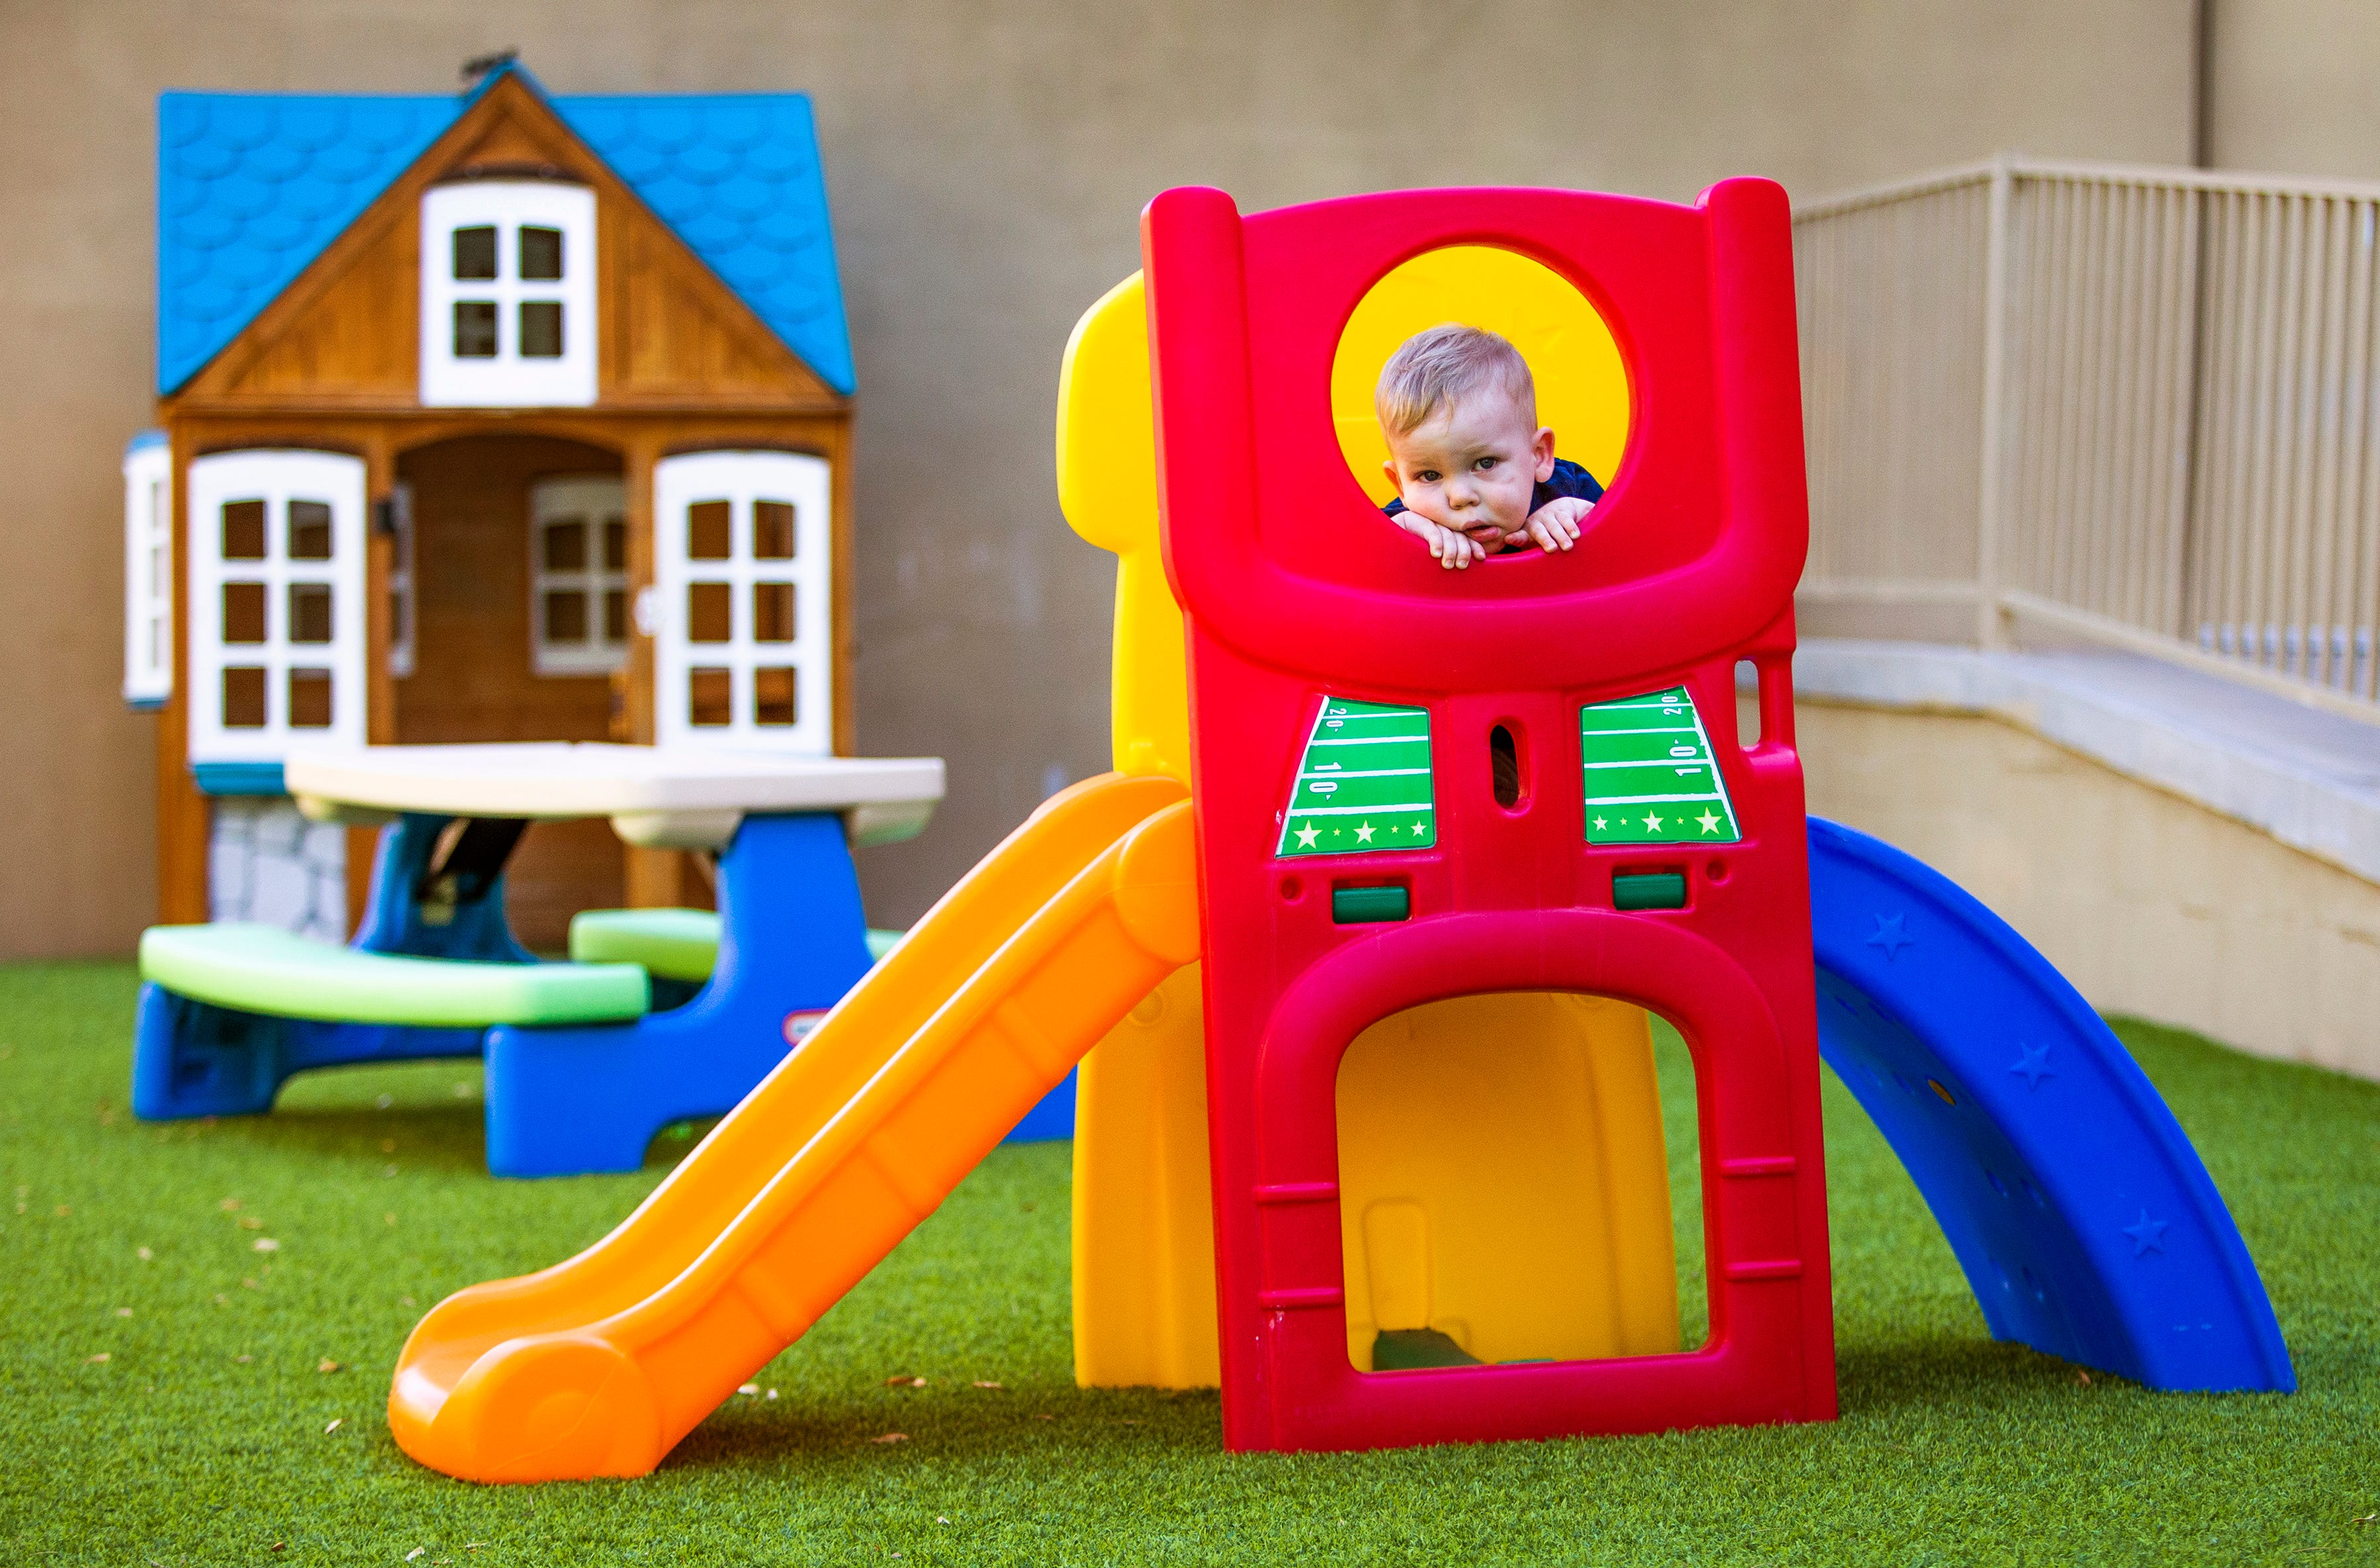 Ahwatukee preschool is the beginning of a Magical Journey